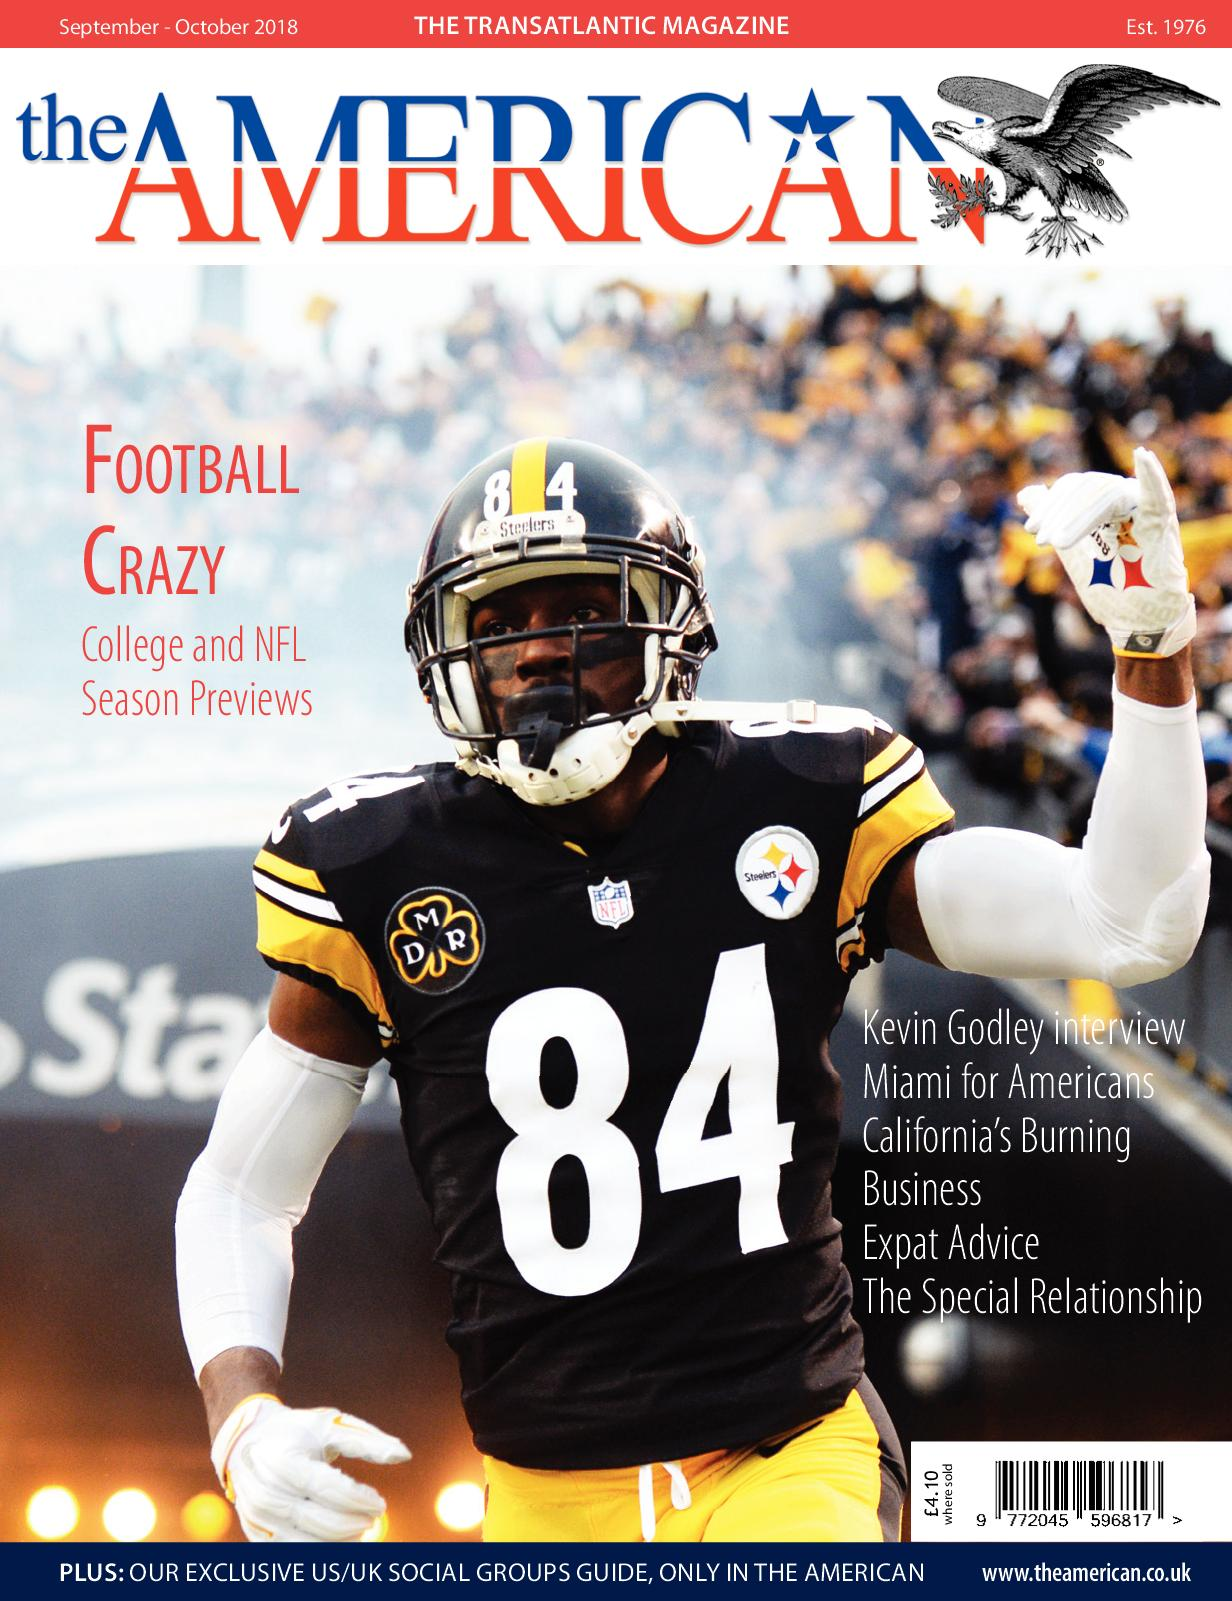 62048abc4 Calaméo - The American September-October 2018 Issue 765